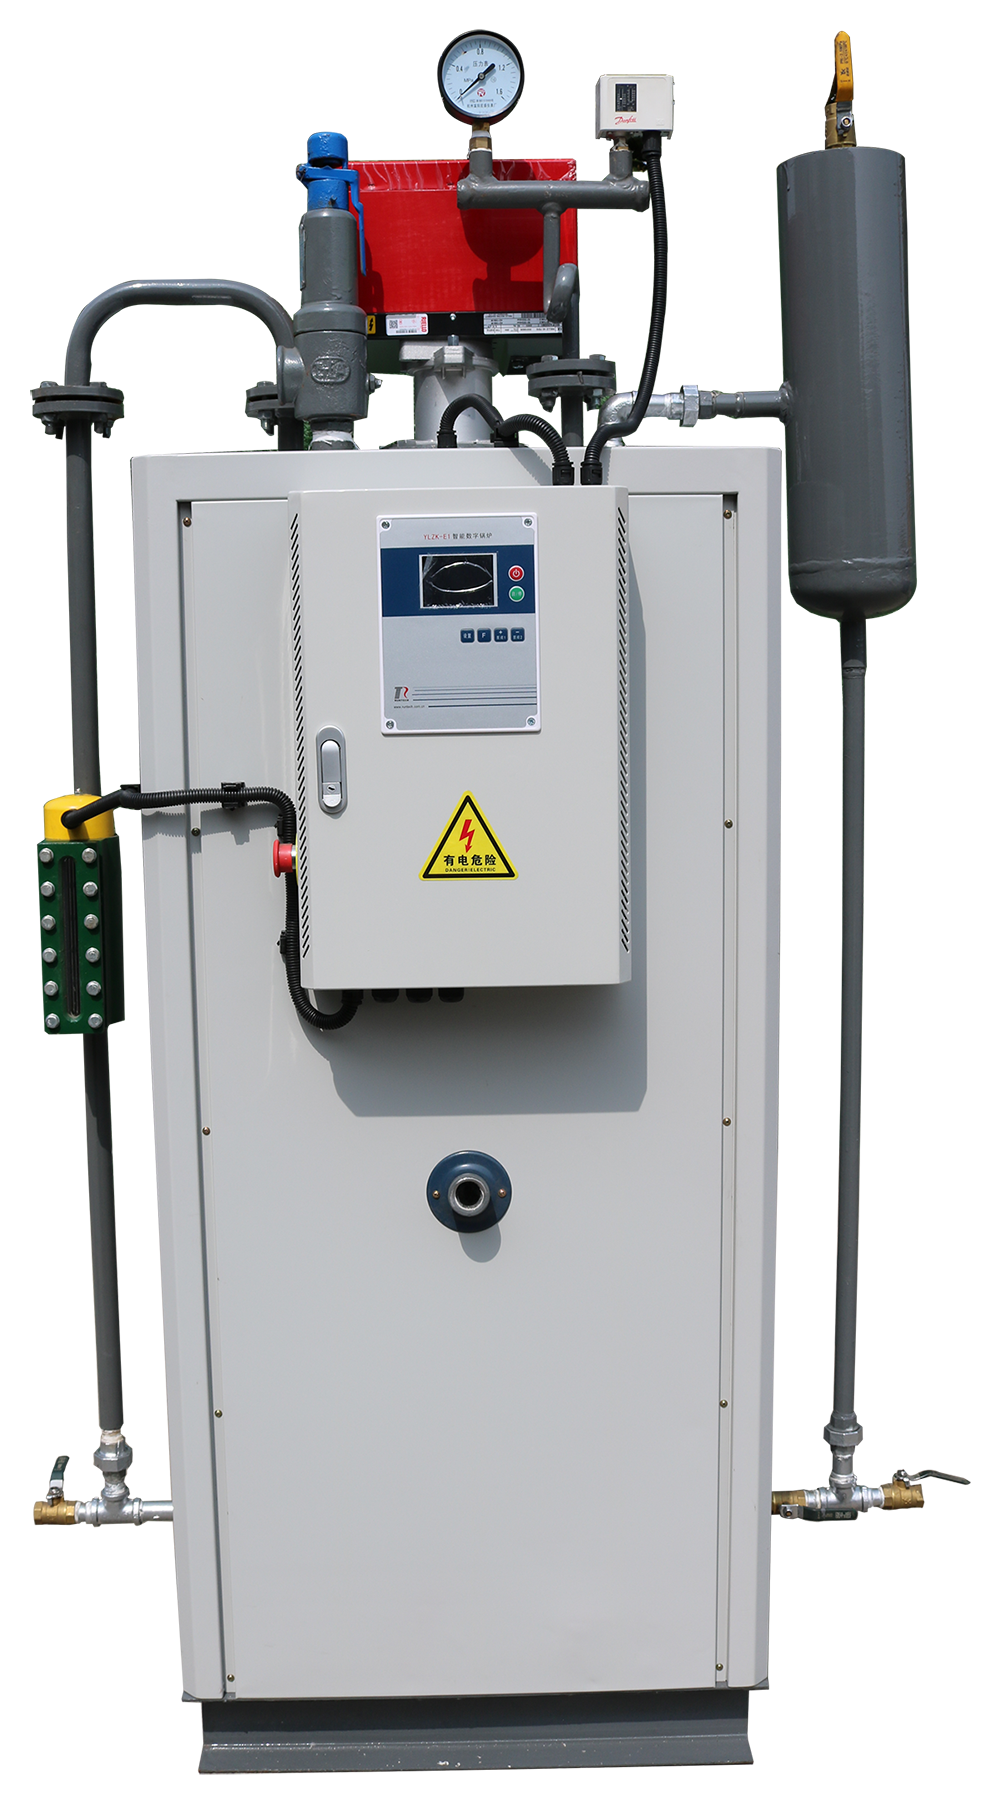 Be sure to operate according to the operating rules of the thermal oil furnace